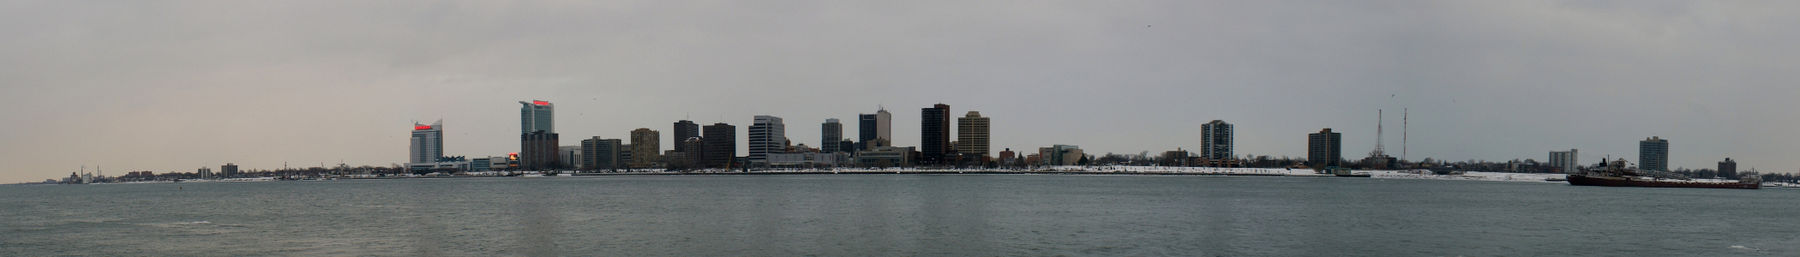 Windsor banner skyline from Detroit.jpg